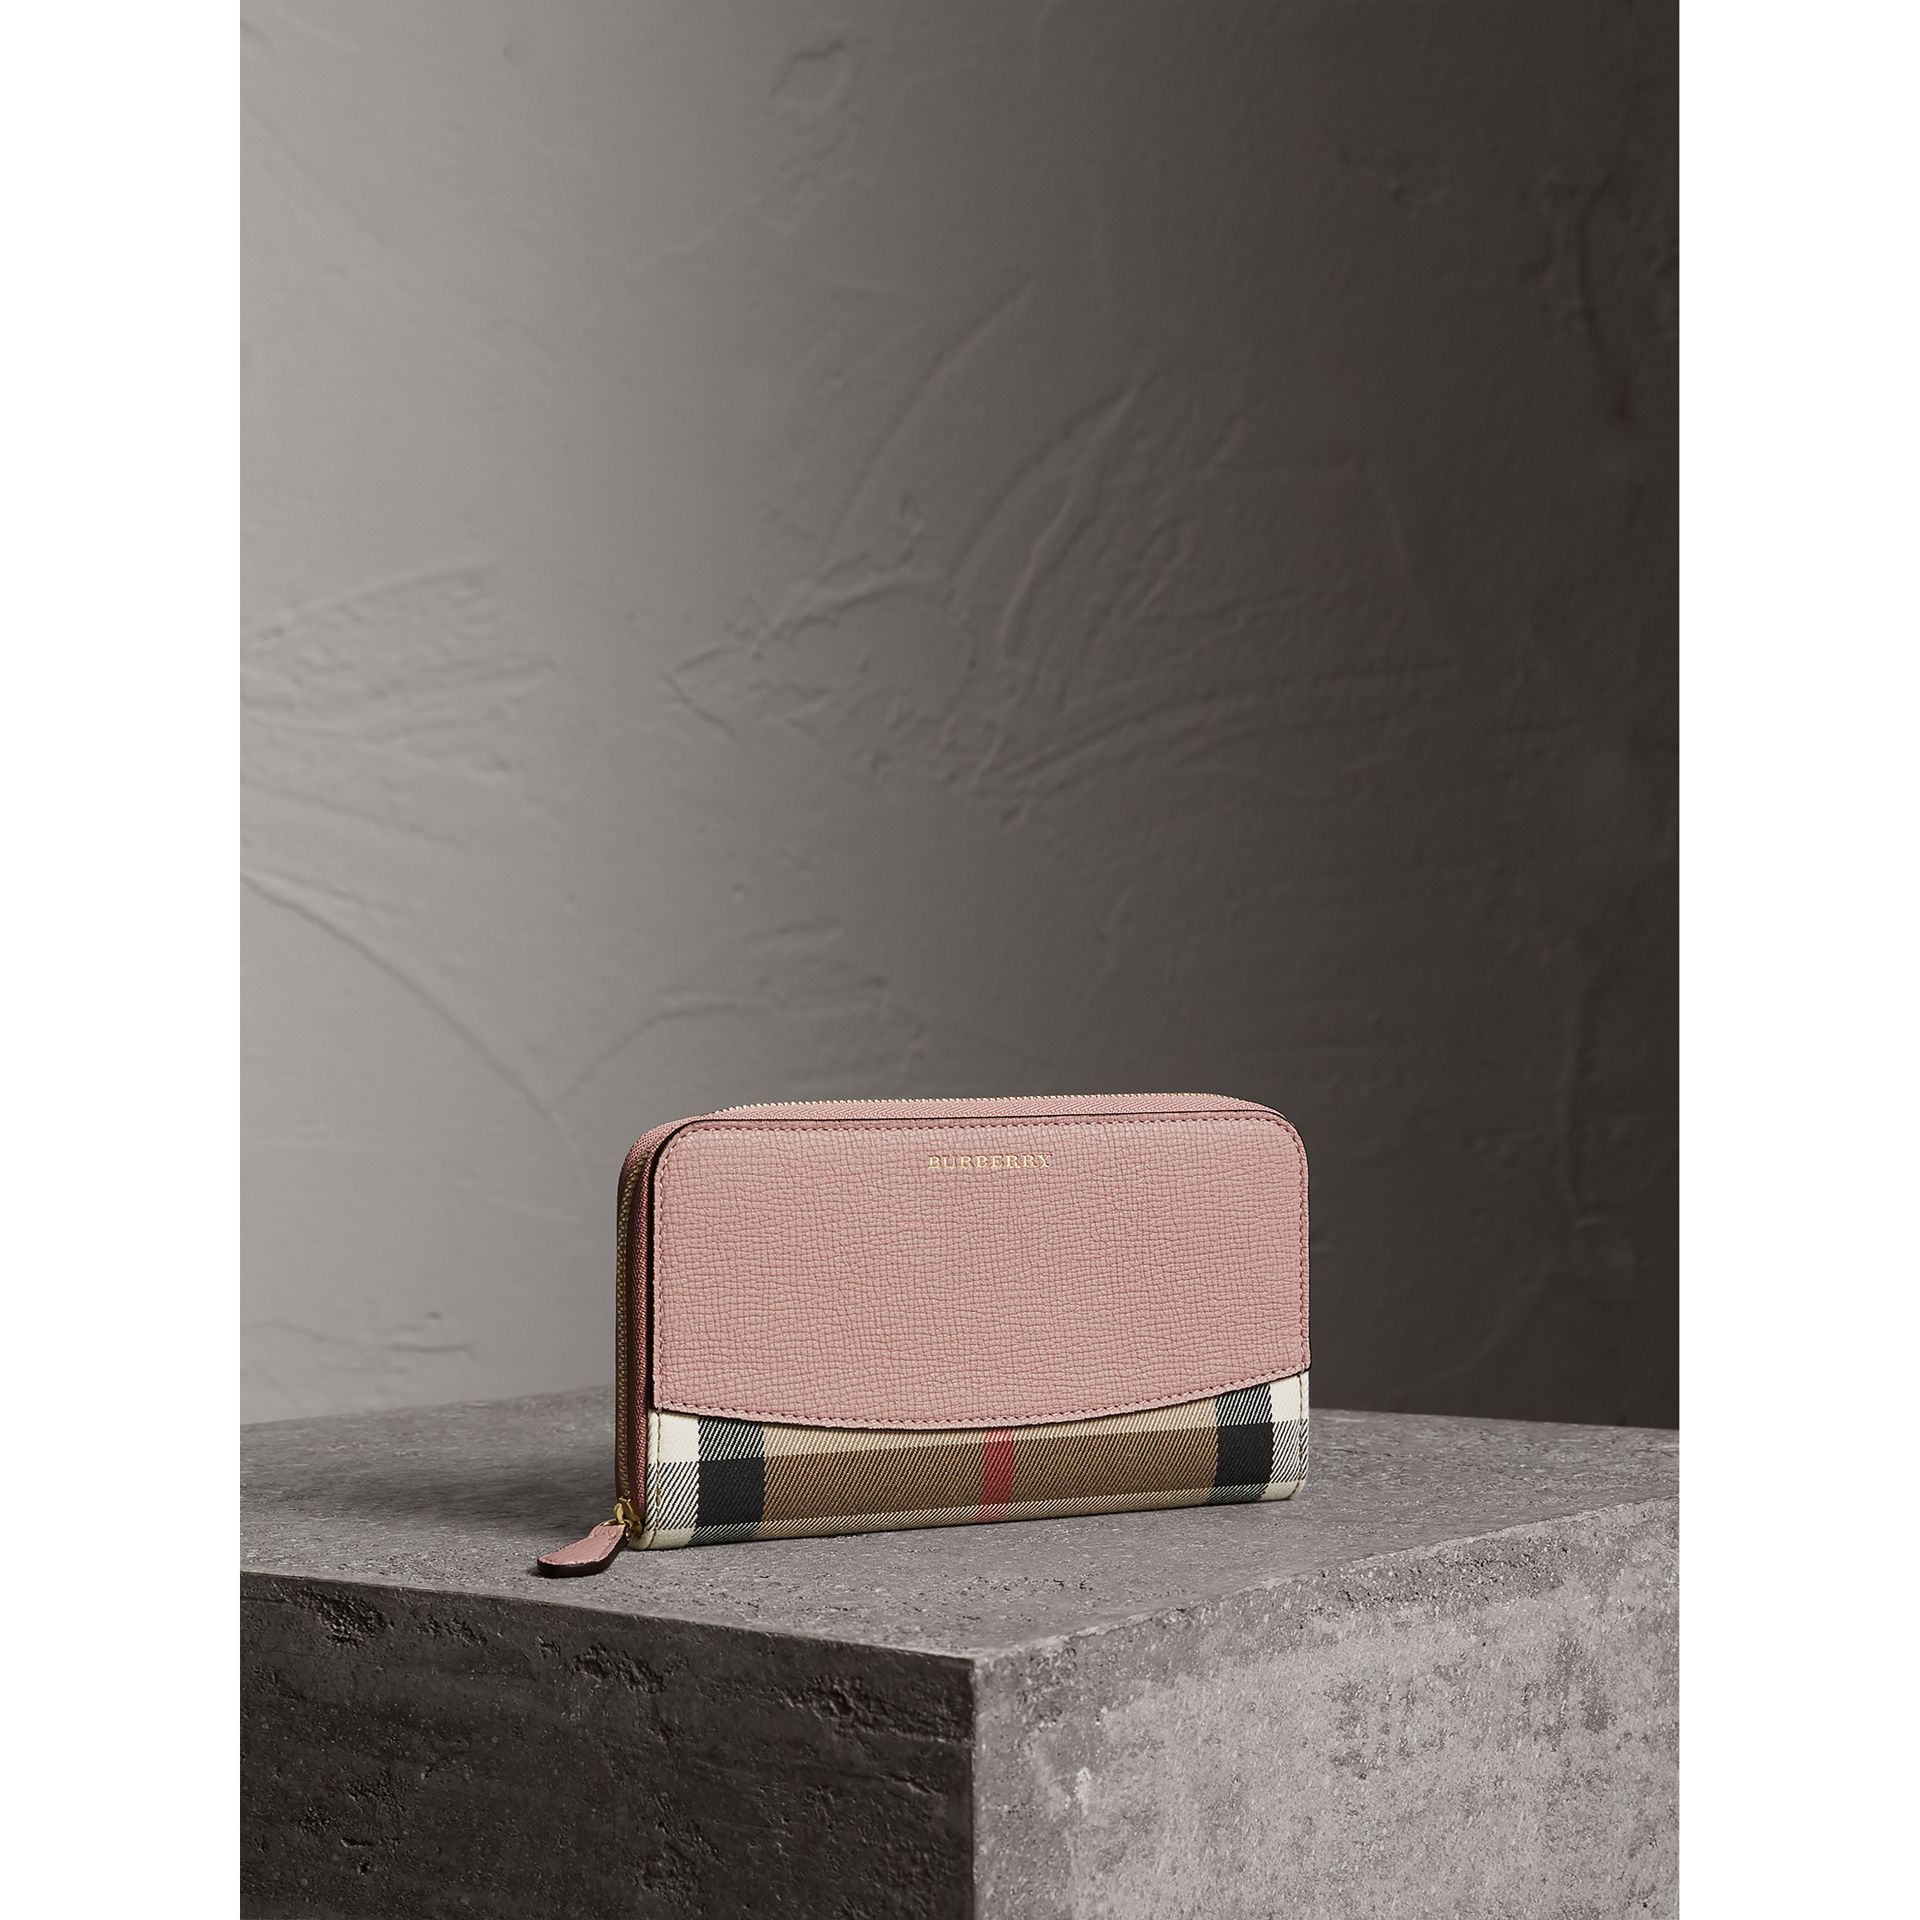 House Check and Leather Ziparound Wallet in Pale Orchid - Women | Burberry United Kingdom - gallery image 1